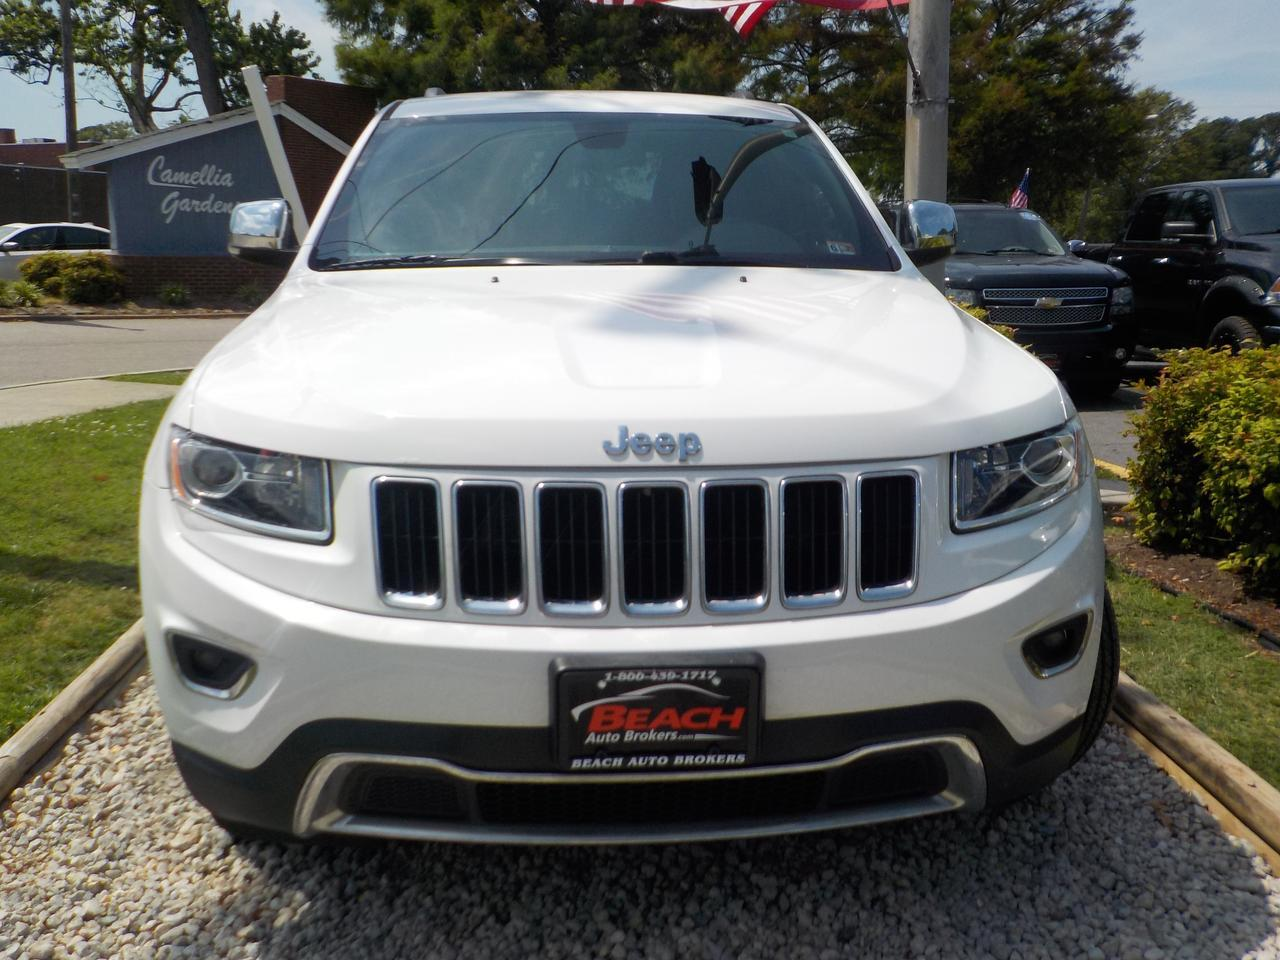 2015 JEEP GRAND CHEROKEE LIMITED 4X4, WARRANTY, LEATHER, NAV, HEATED SEATS, BACKUP CAM, REMOTE START, 1 OWNER! Norfolk VA